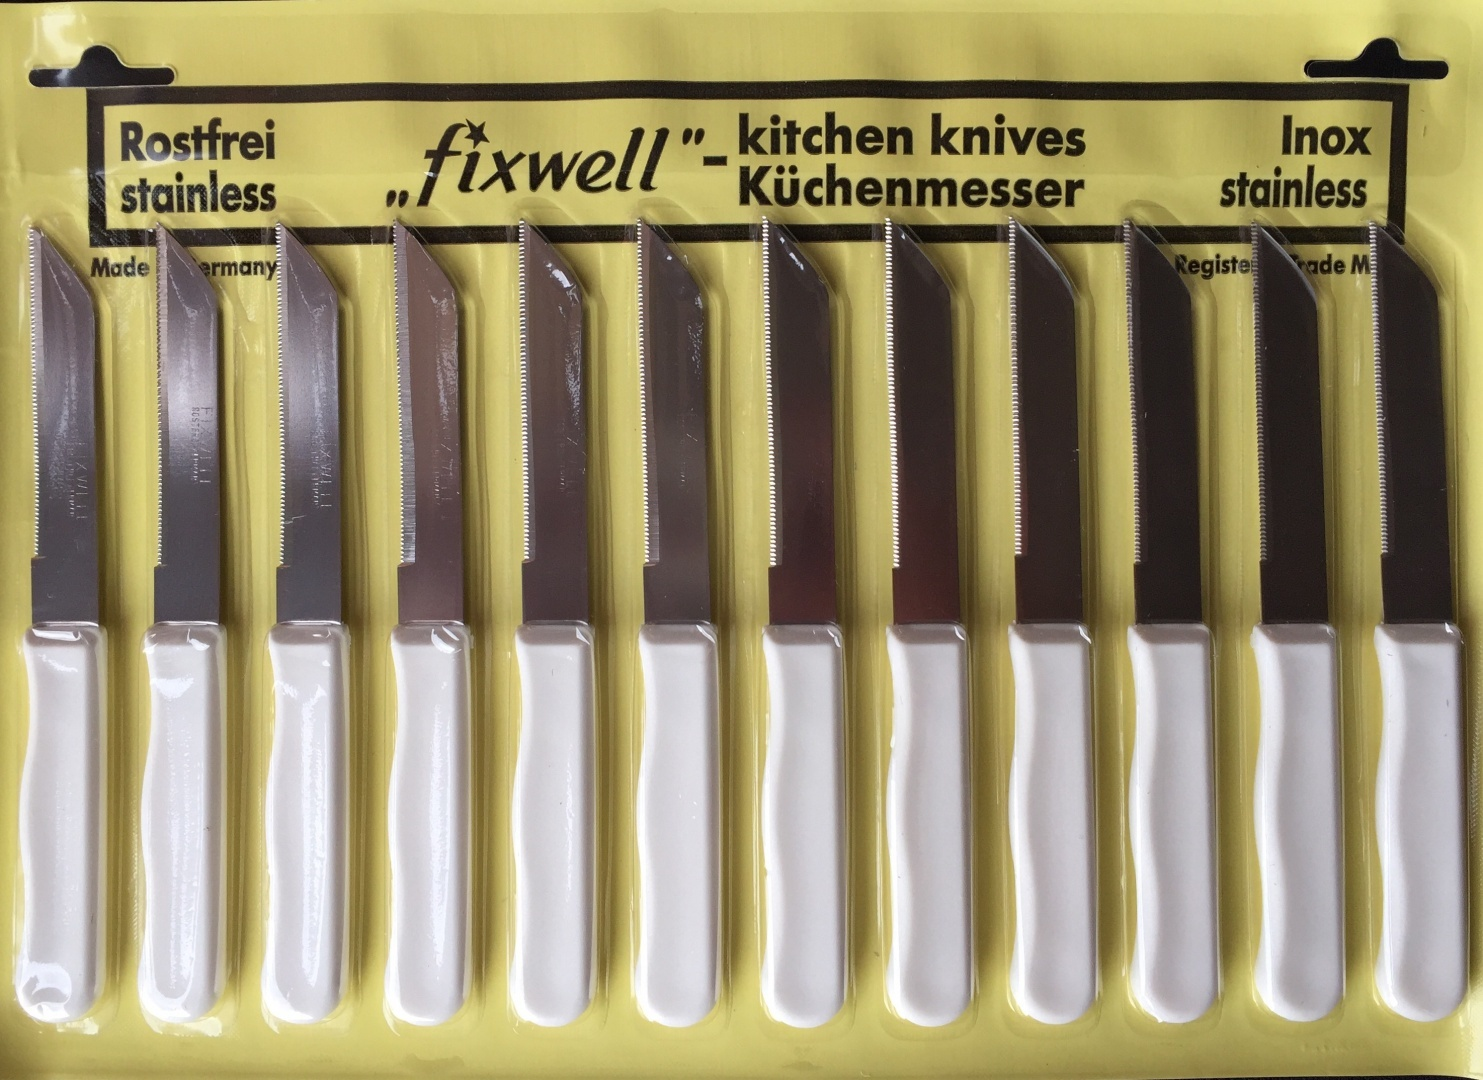 Surprising Fixwell Knife Set 02016 White Colour Genuine Product Made In Germany Interior Design Ideas Truasarkarijobsexamcom